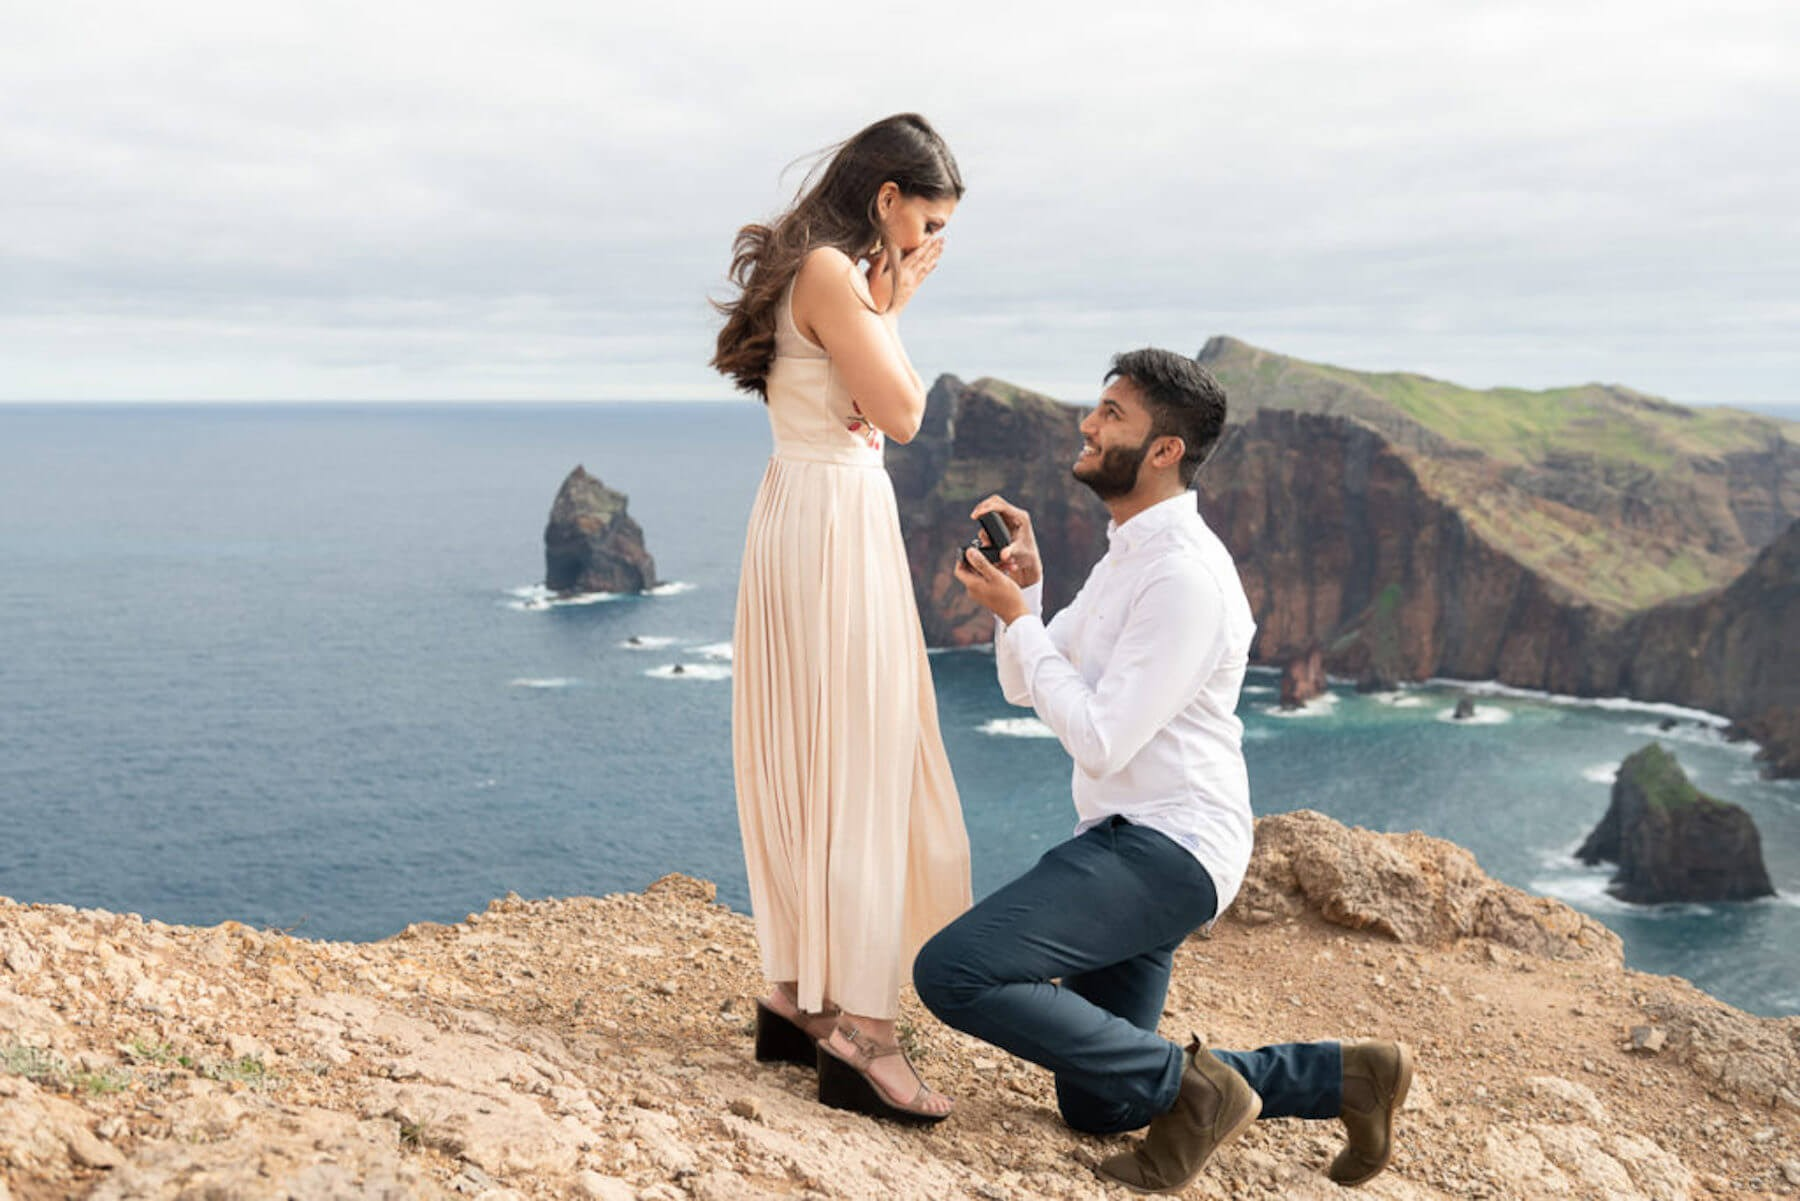 man proposing to a woman overlooking the sea